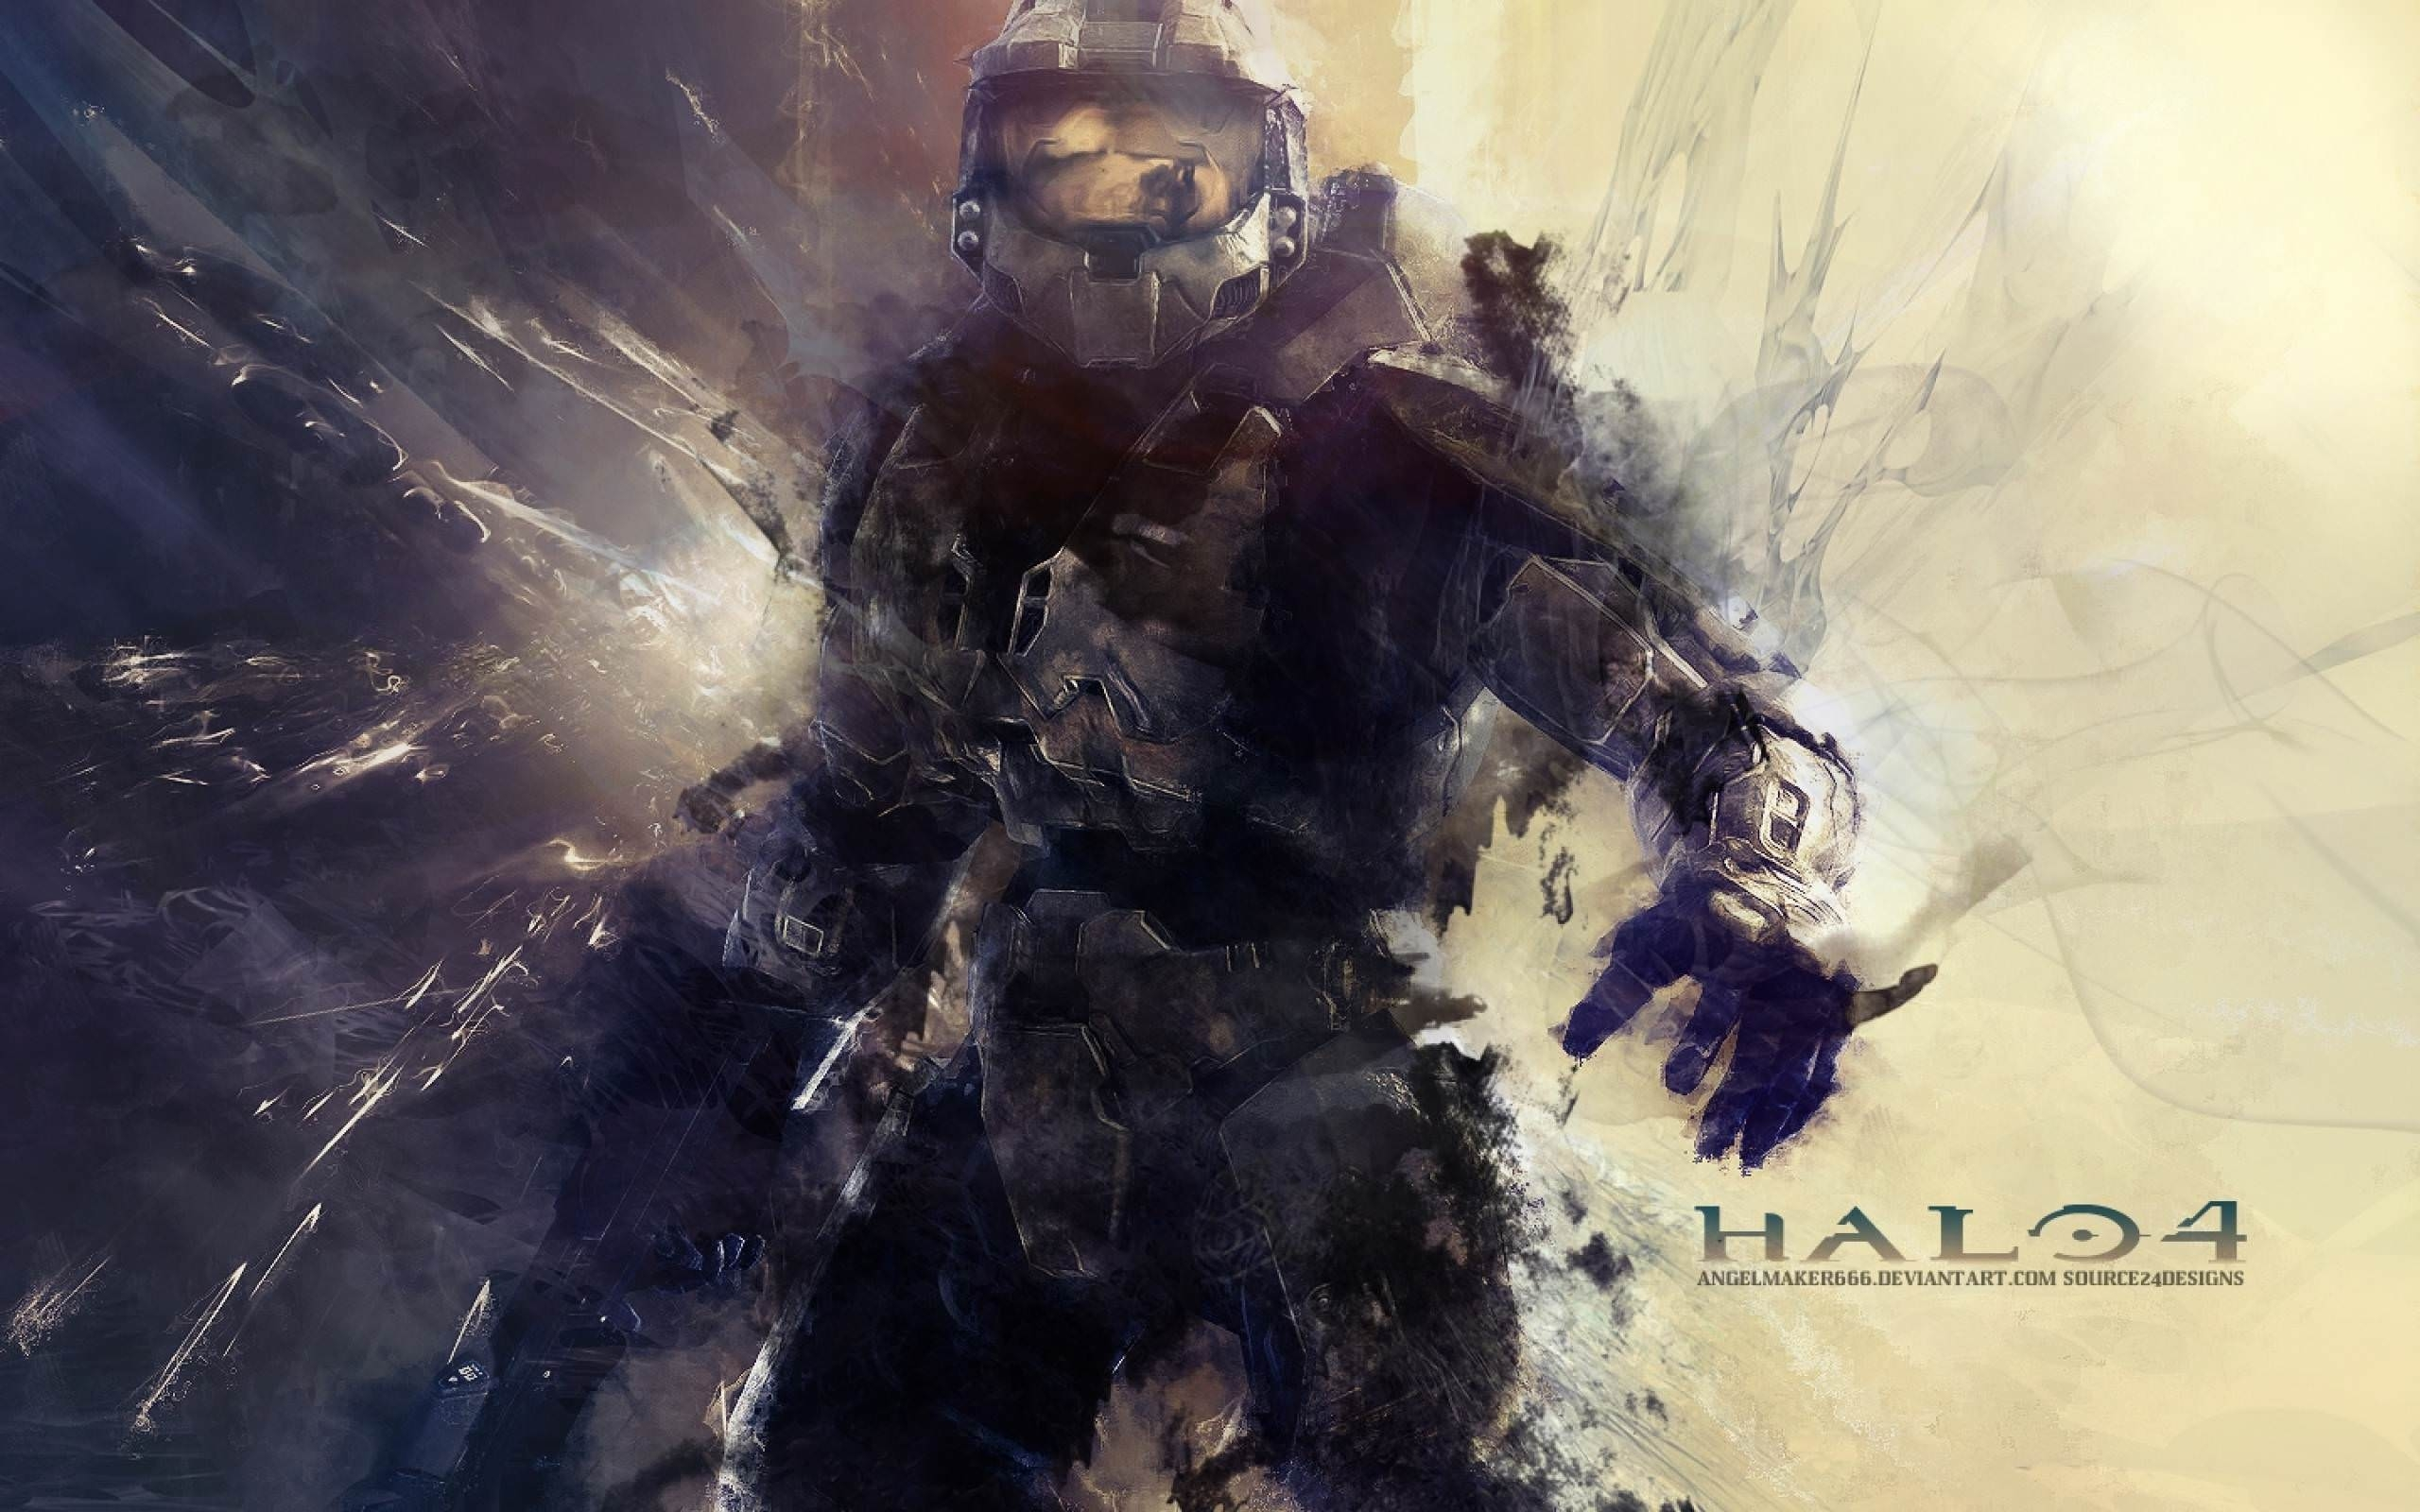 Halo 4 Wallpaper For Free